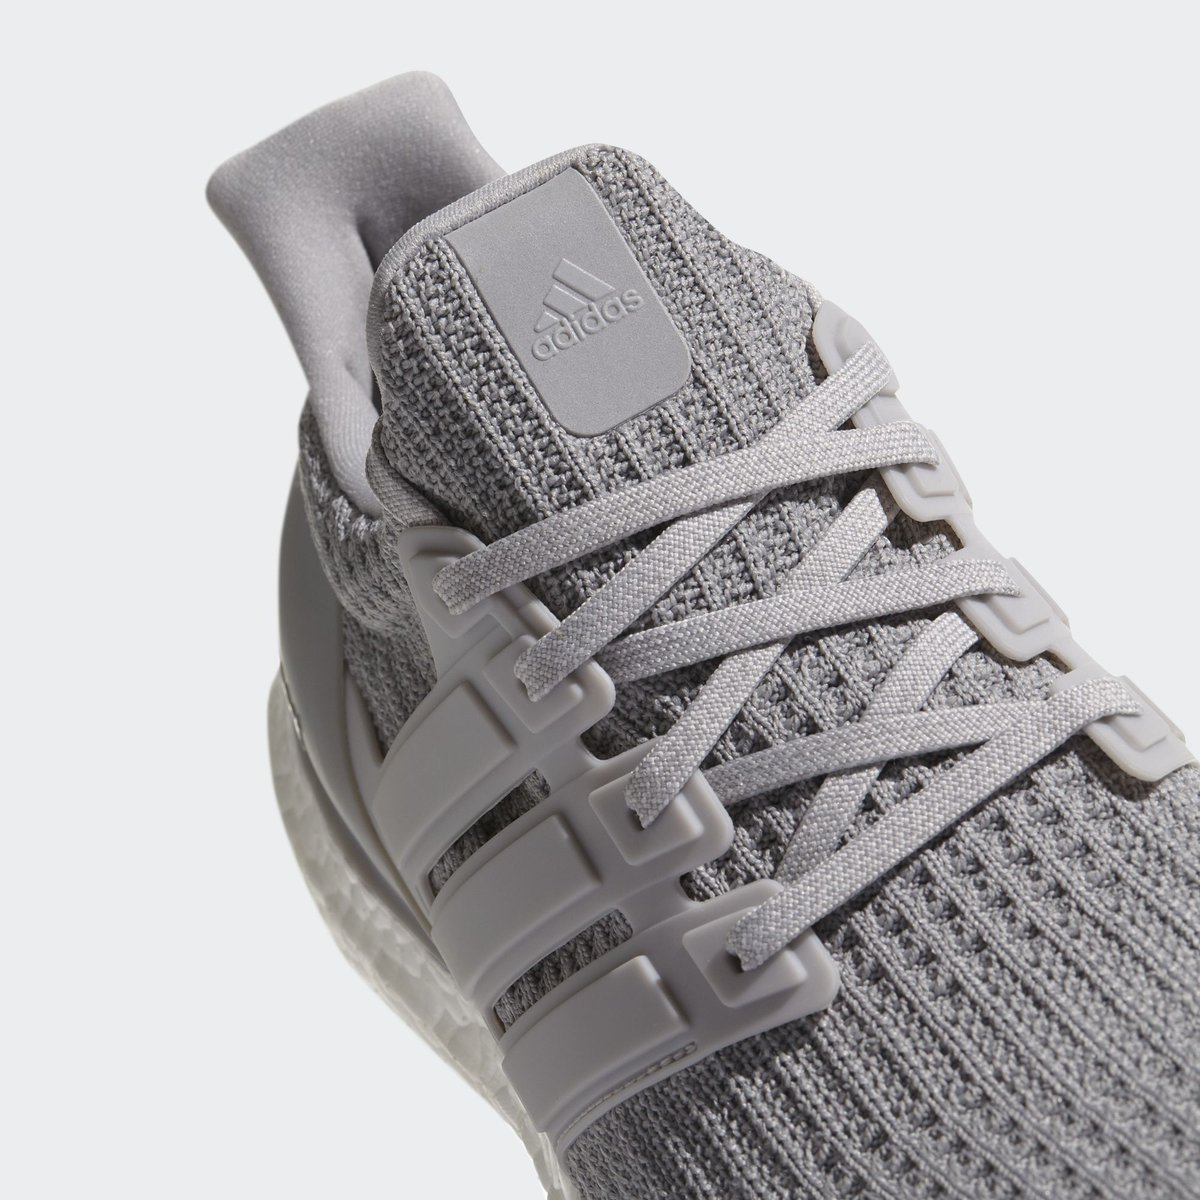 672ab6868 Ultra boost 4.0 Grey Two Grey Two Core Black BB6167  180  http   www.adidas .com us BB6167.htmlpic.twitter.com VE5CtoMHeA